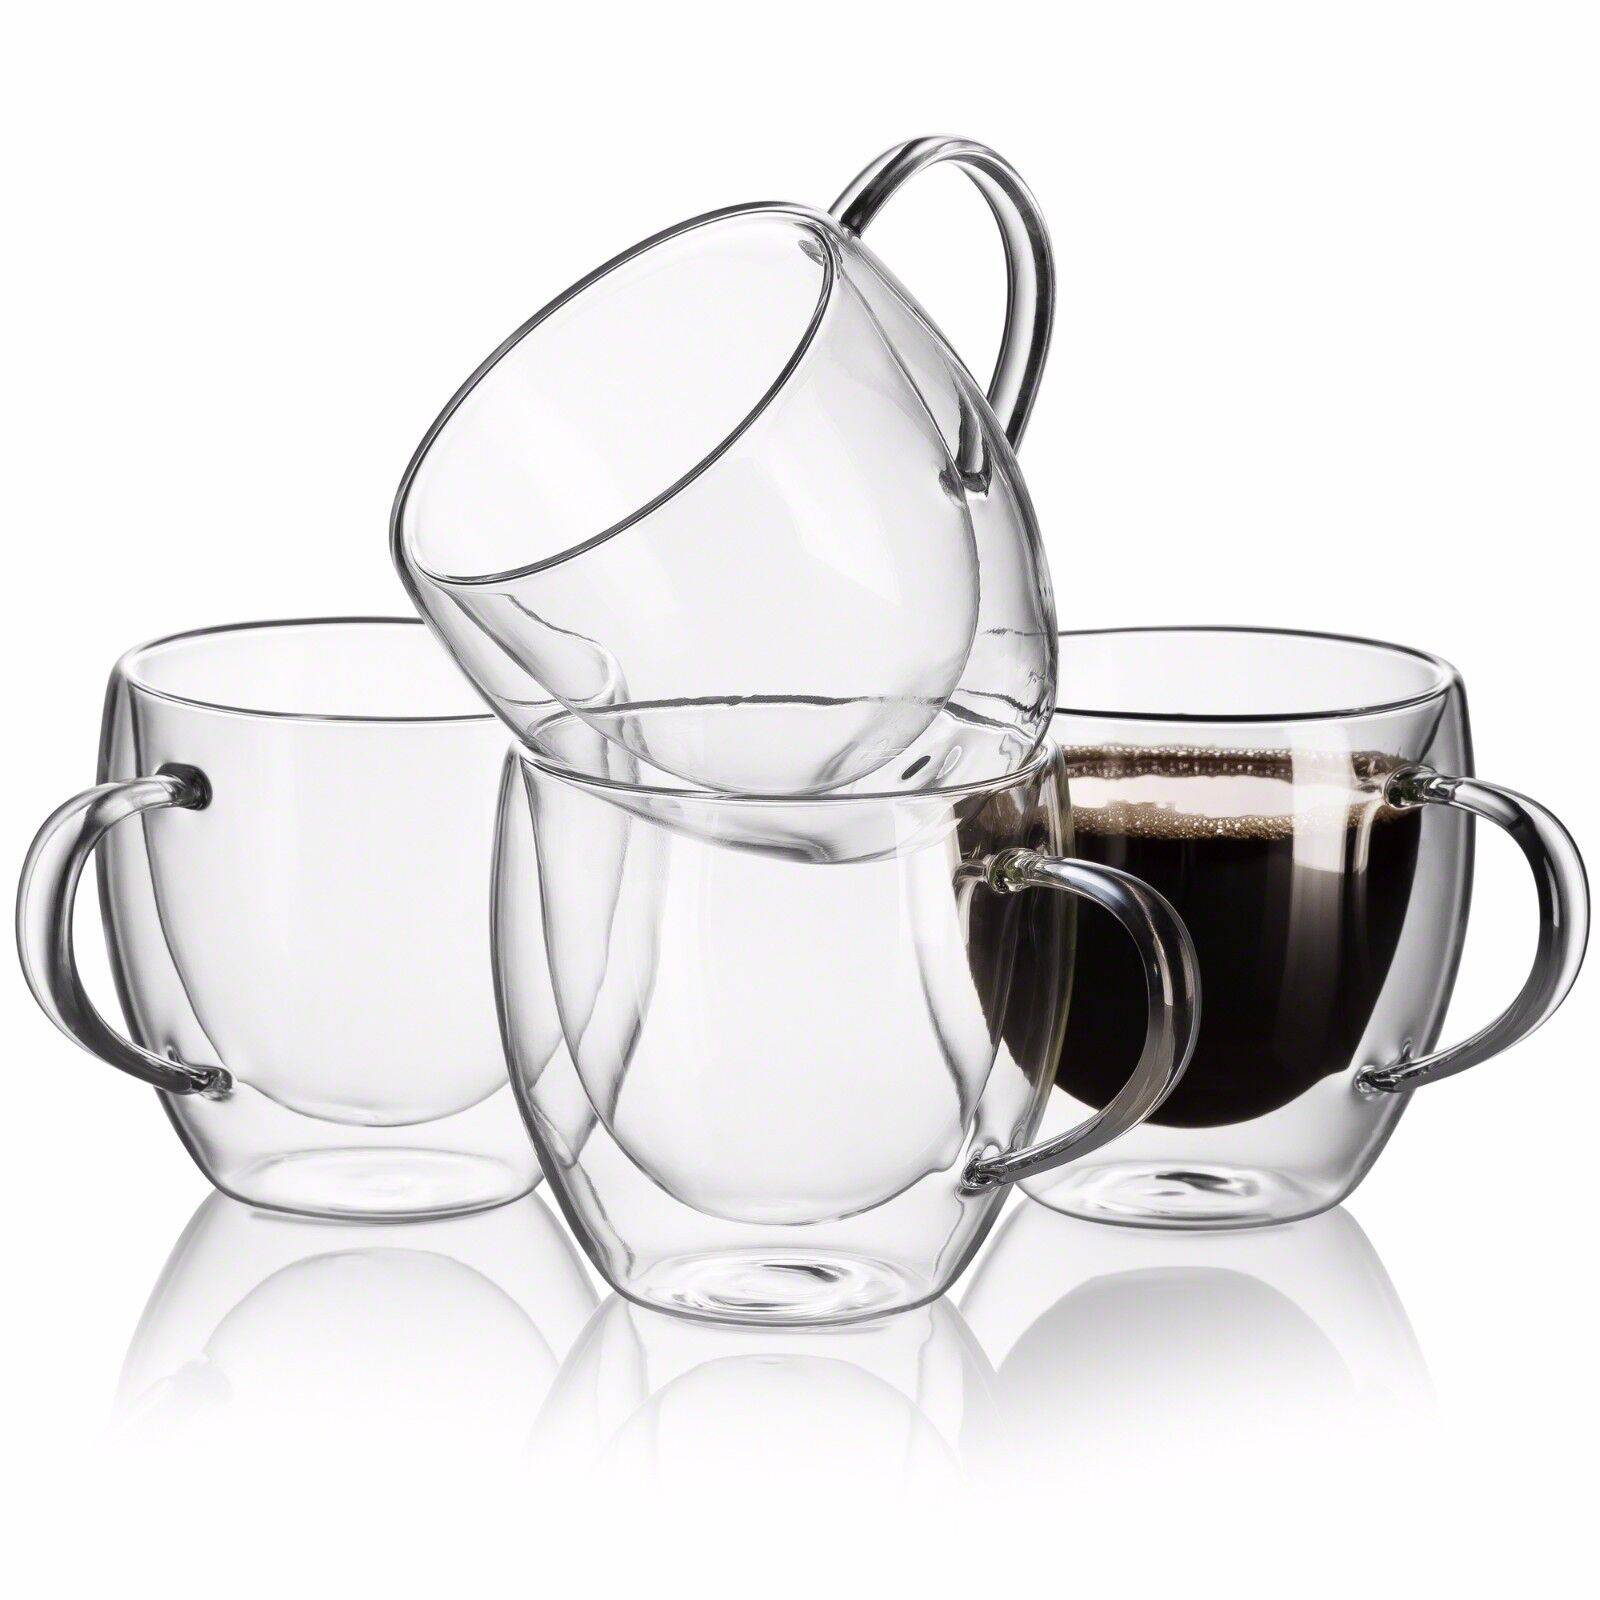 Meway 12oz Coffee Mugs Set Of 4 Clear Glass Double Wall Cup With Handle For For Sale Online Ebay